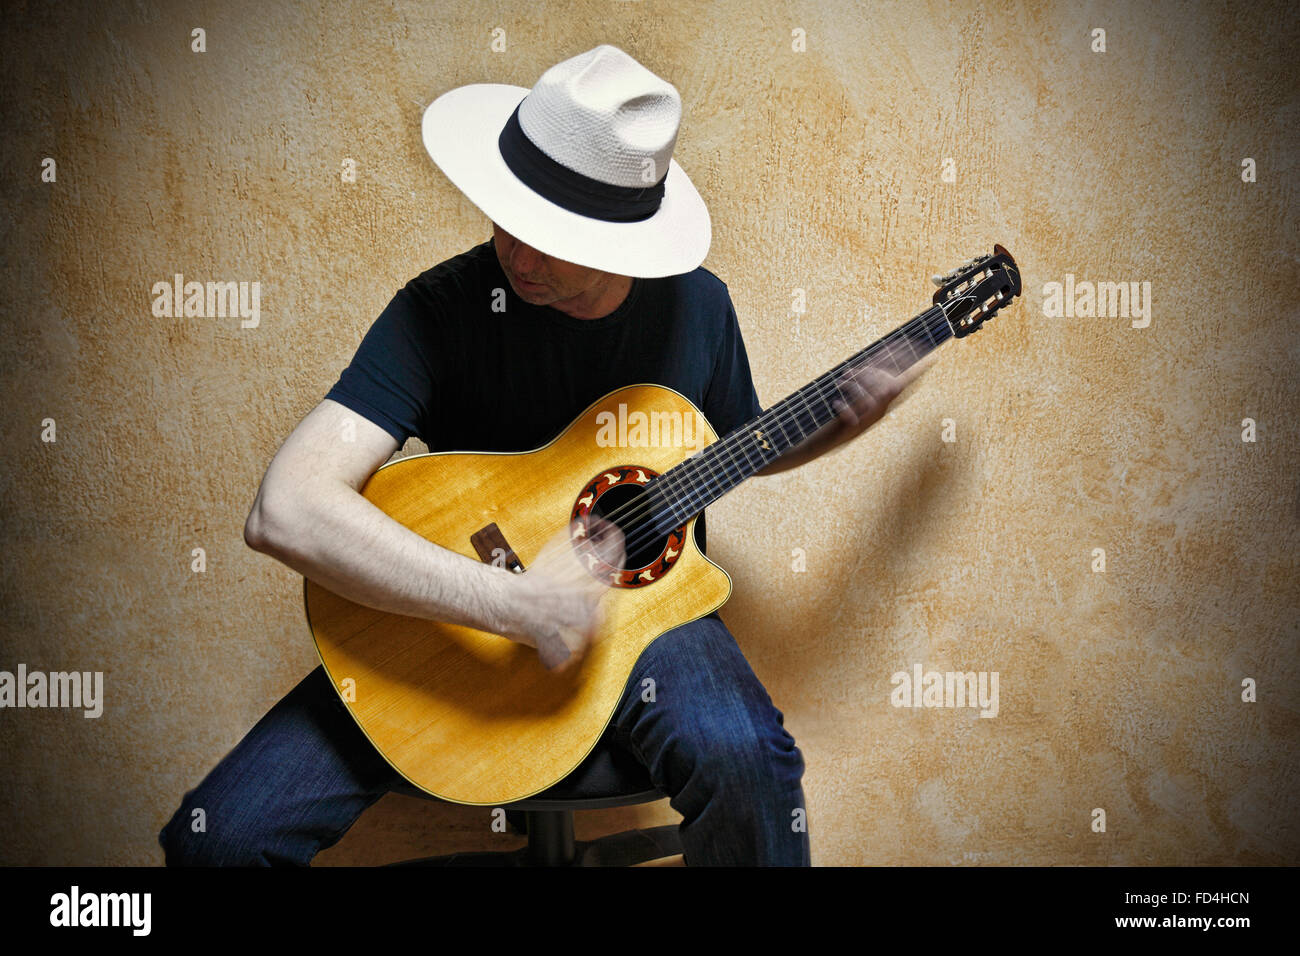 A guitarist playing guitar really fast. - Stock Image